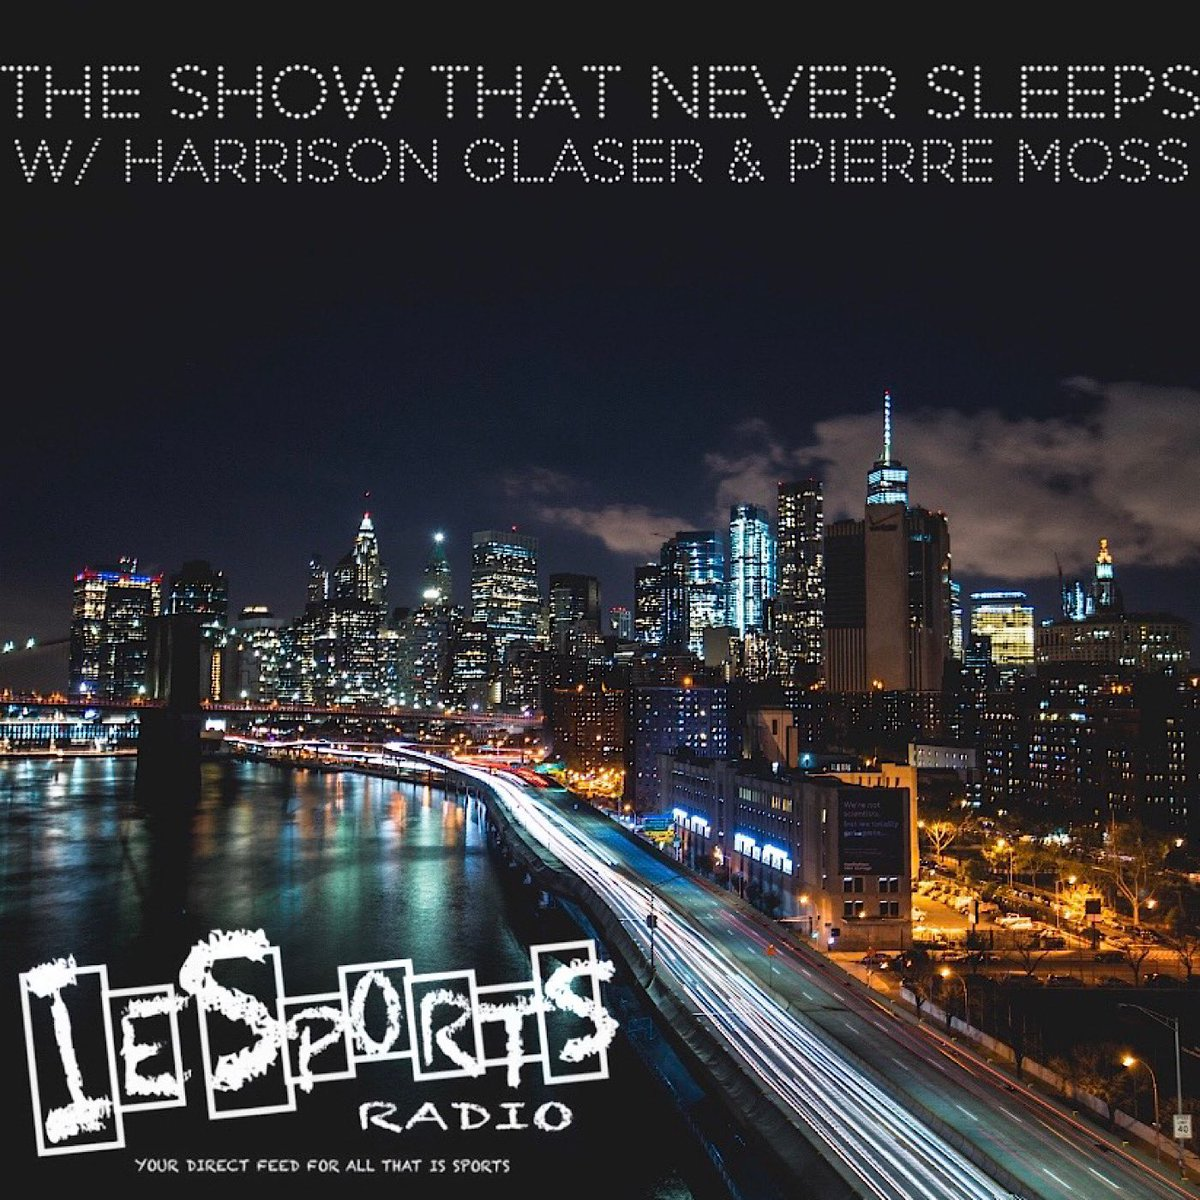 Tune in live for #TheShowThatNeverSleeps with @NYJetsTFMedia & @skywalker42811! #NFL #TakeFlight #TogetherBlue #MLB #NYYforNY #LGM #MLS #MLSCupPlayoffs #NYCFC #RBNY #NBA #NBADraft #NewYorkForever #WeGoHard  @ShowNvrSleepsIE